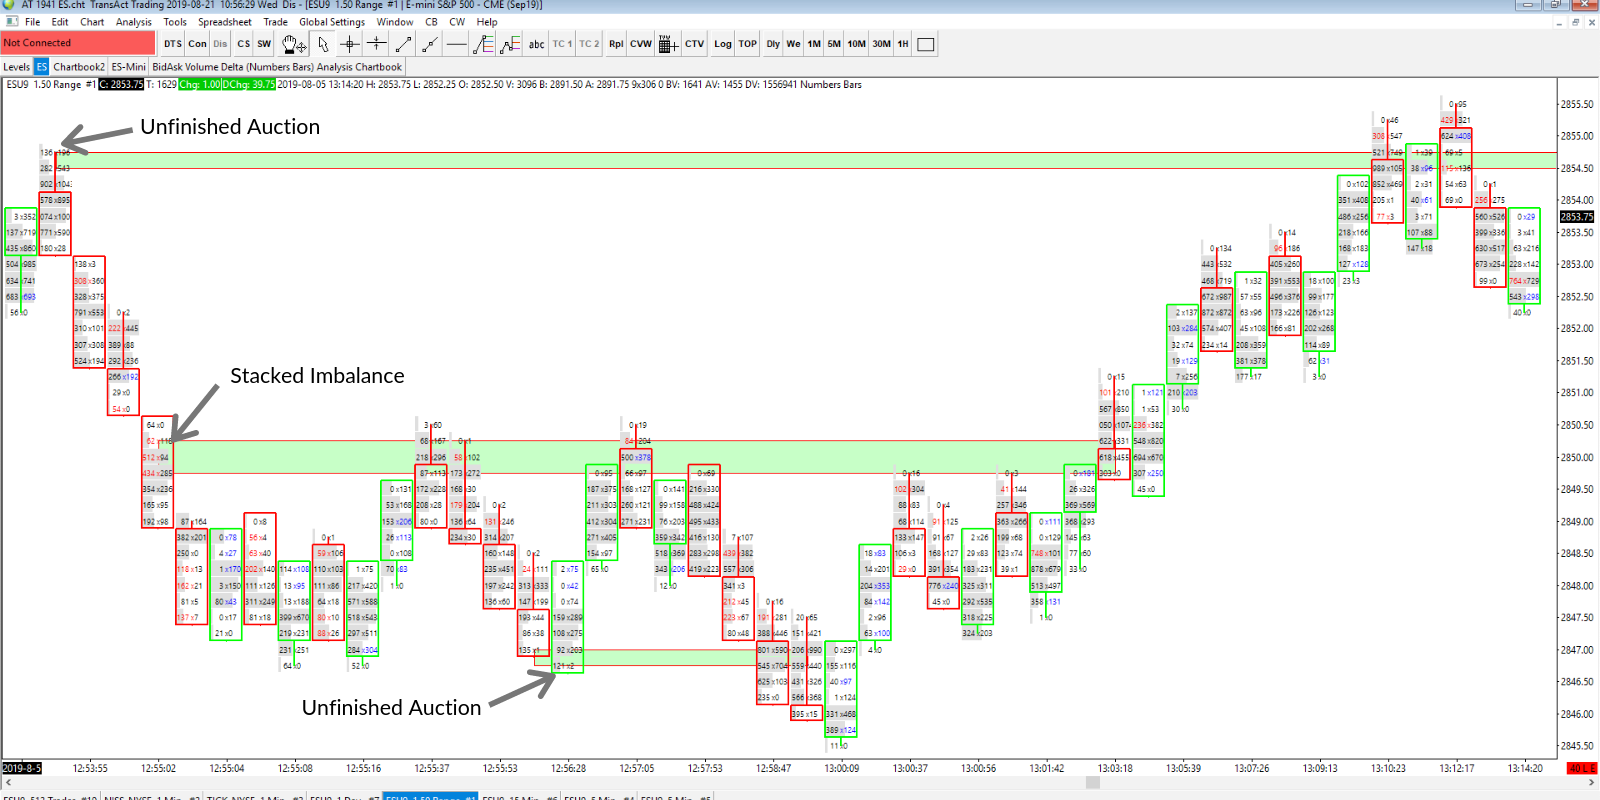 Footprint Chart Intraday Support and Resistance